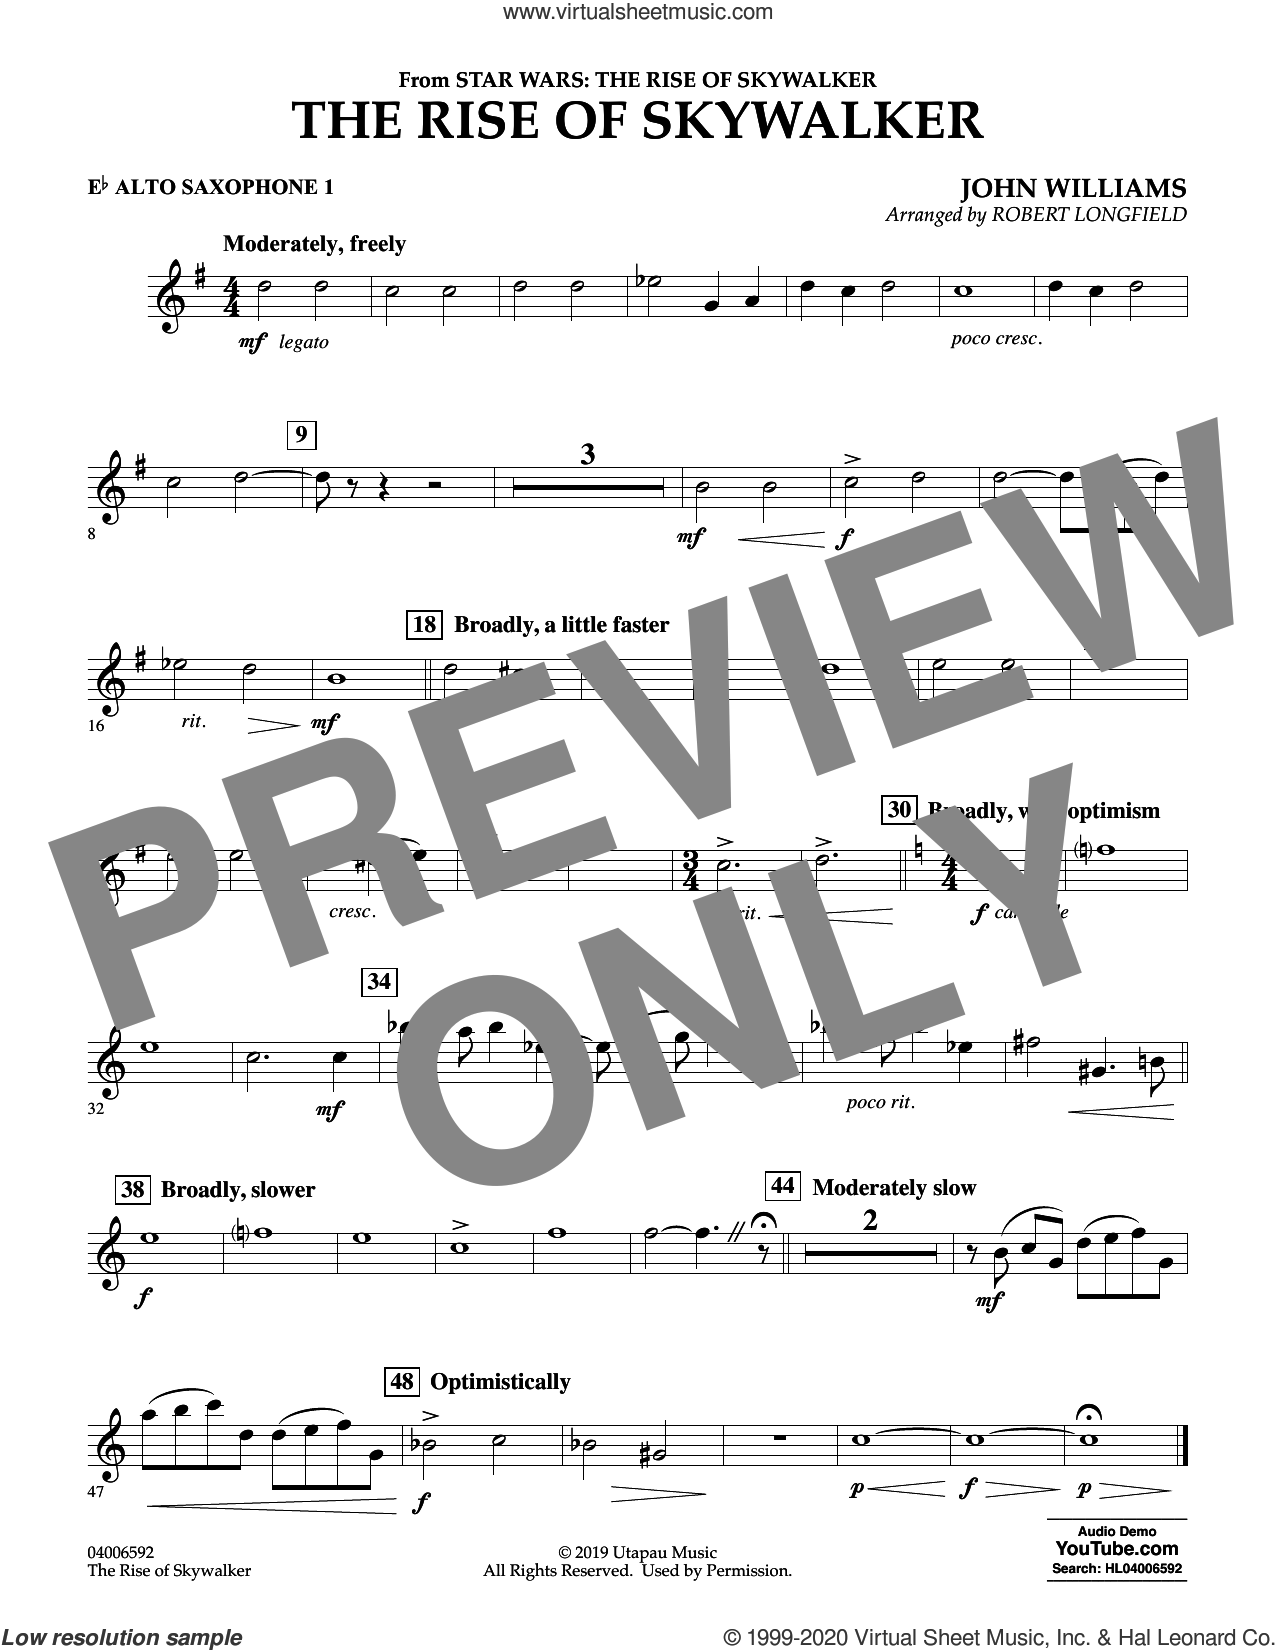 The Rise of Skywalker (from Star Wars: The Rise of Skywalker) sheet music for concert band (Eb alto saxophone 1) by John Williams and Robert Longfield, intermediate skill level